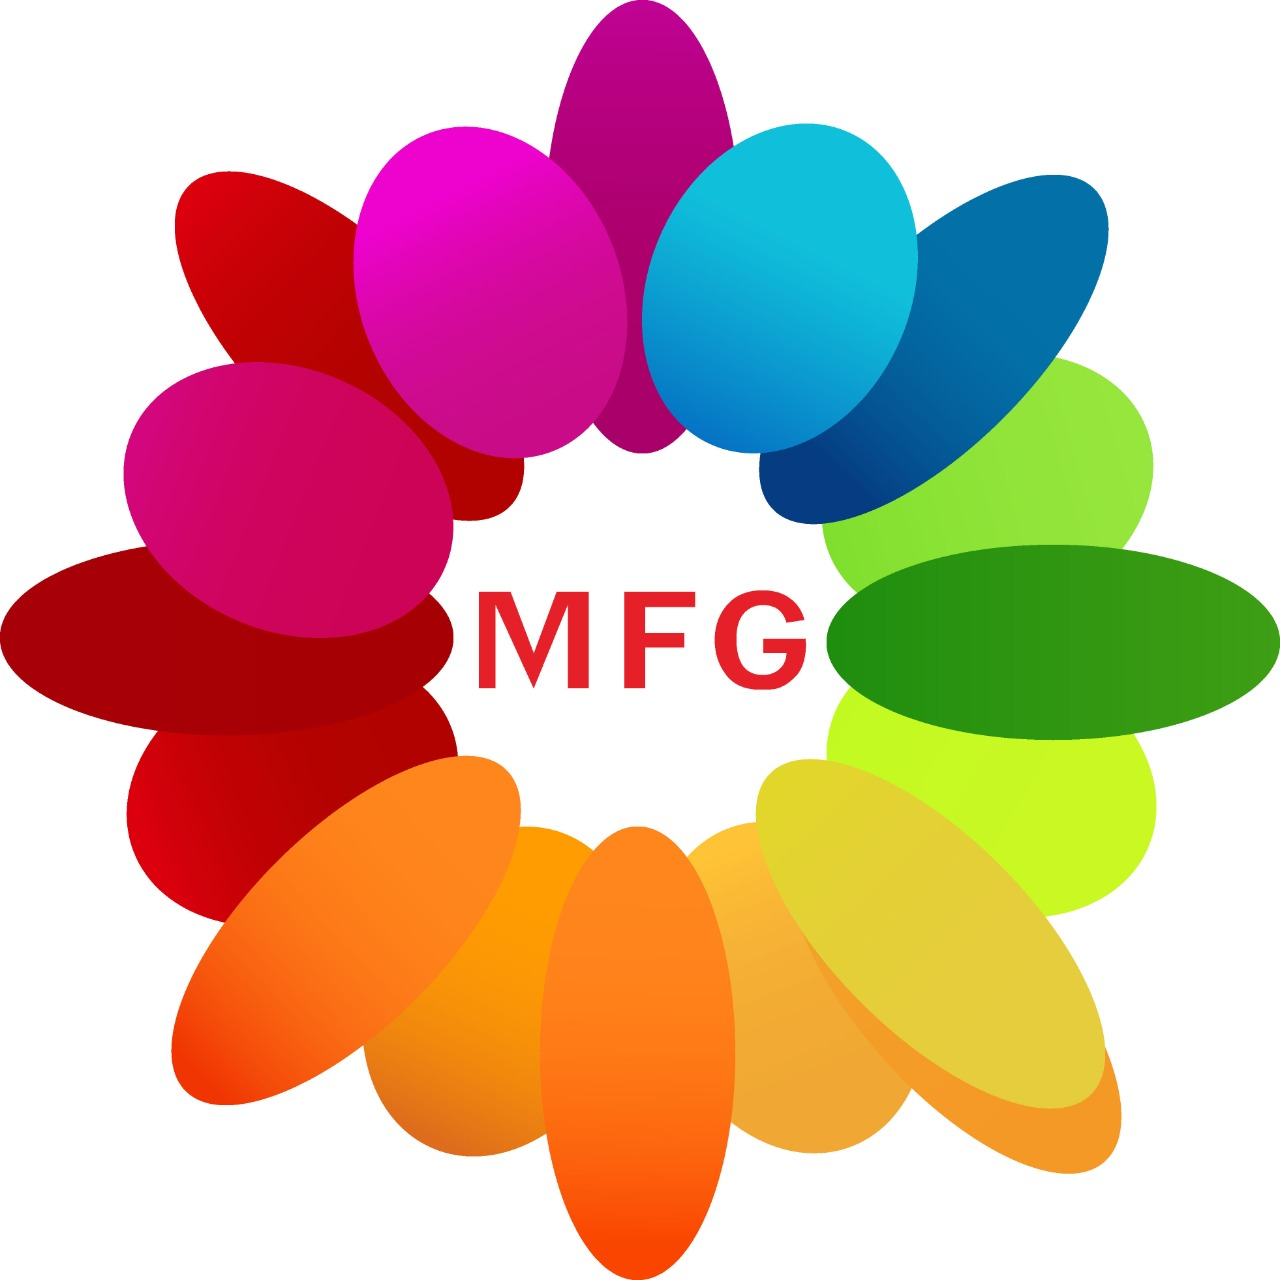 1 kg chocolate dreams heart shape cake(Eggless)